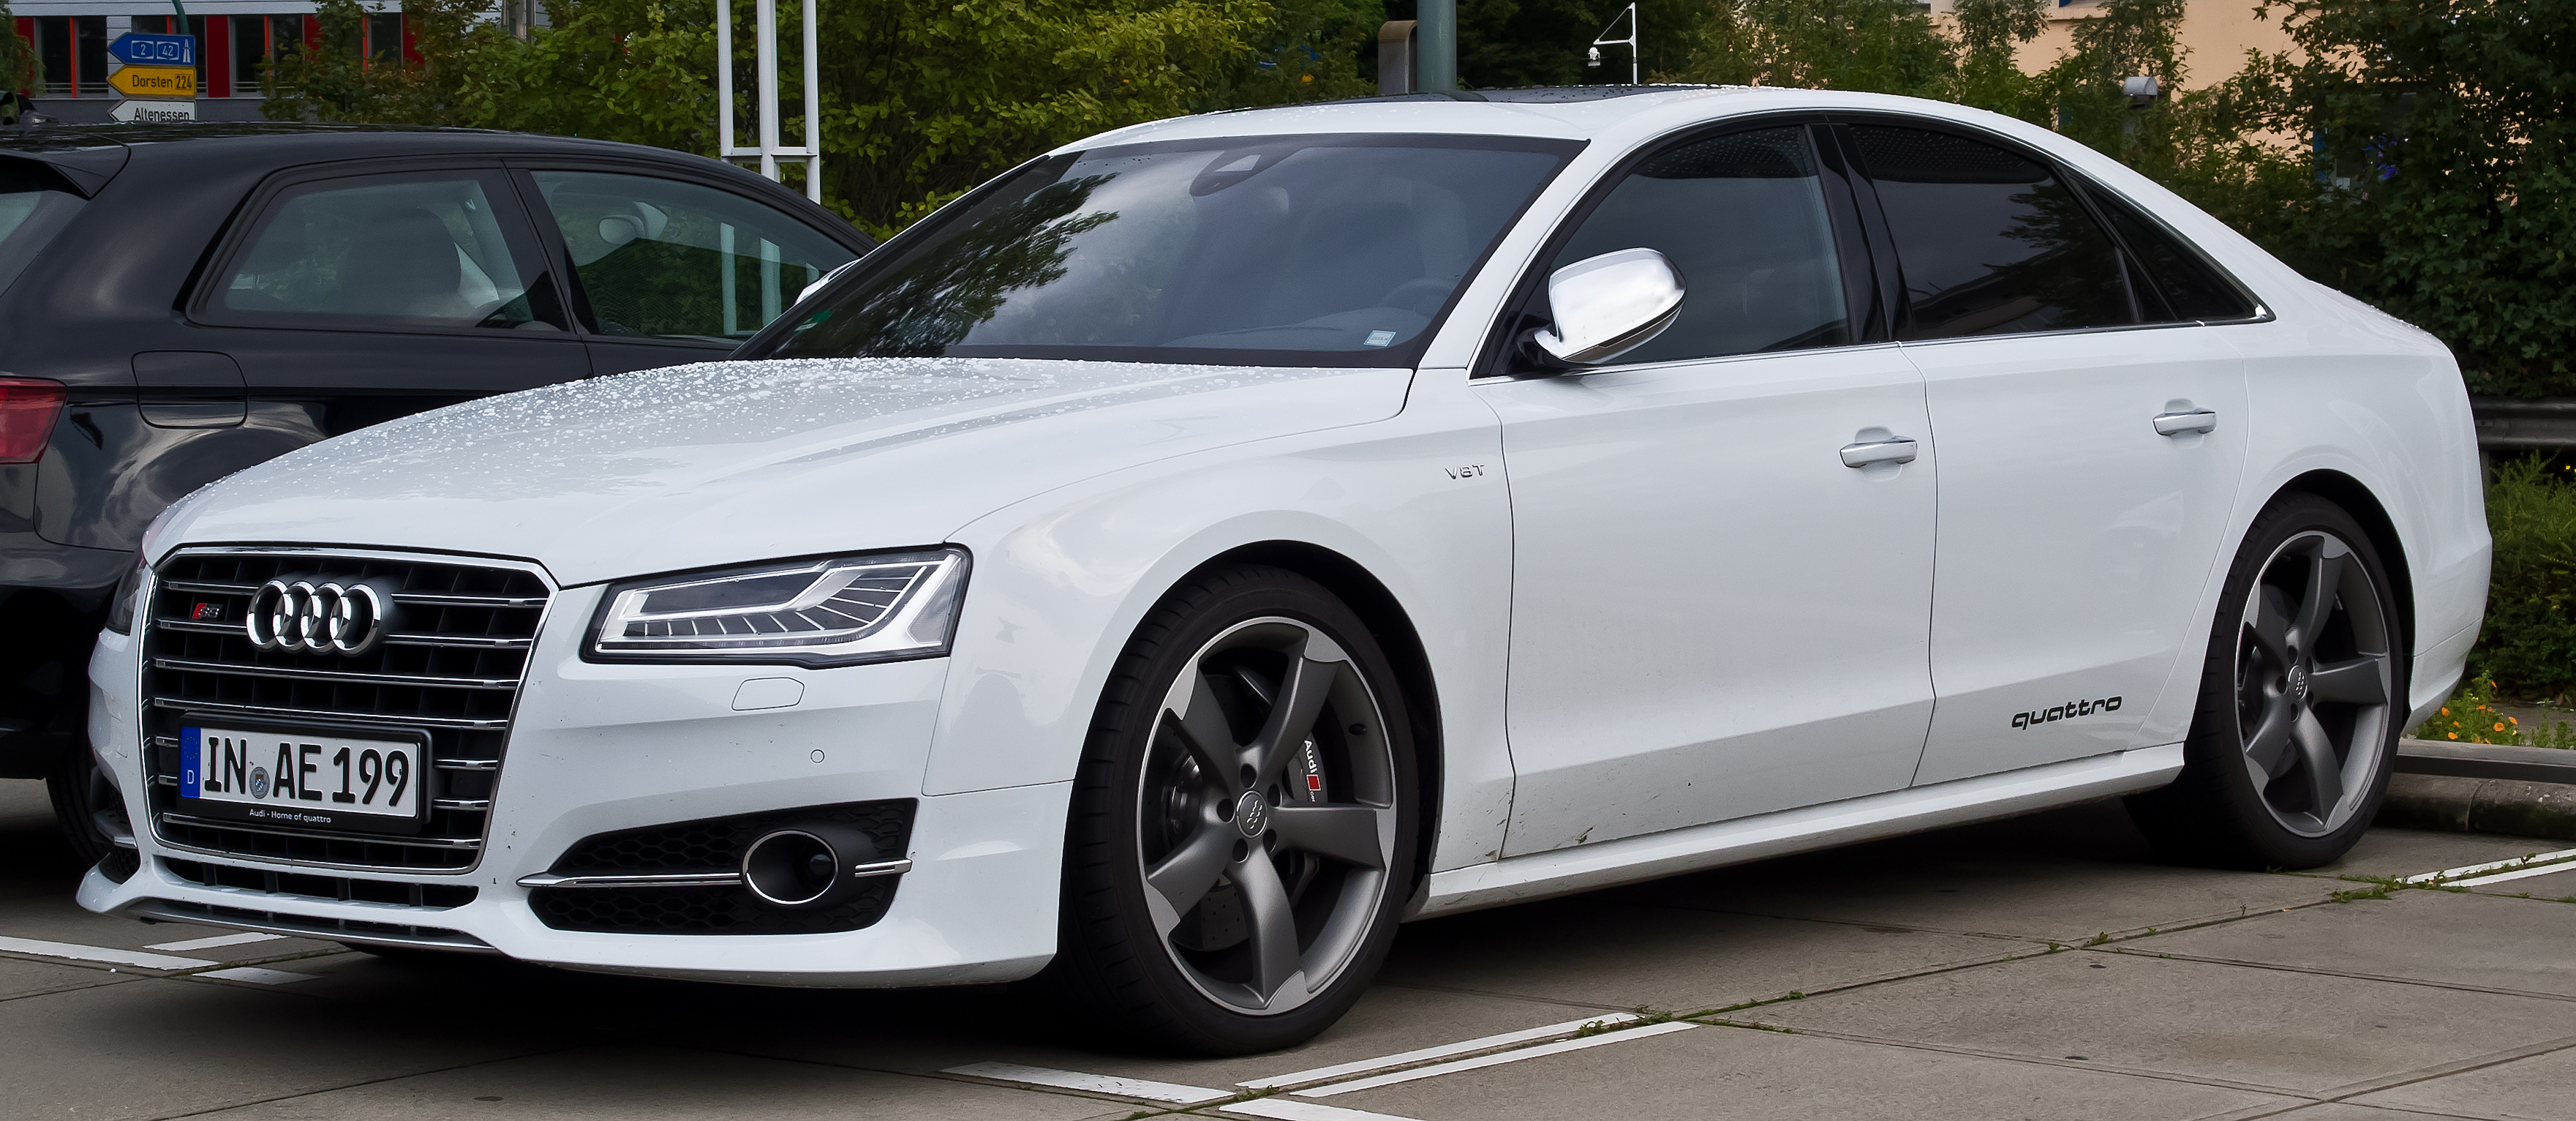 Pictures of audi s8 d4 2013